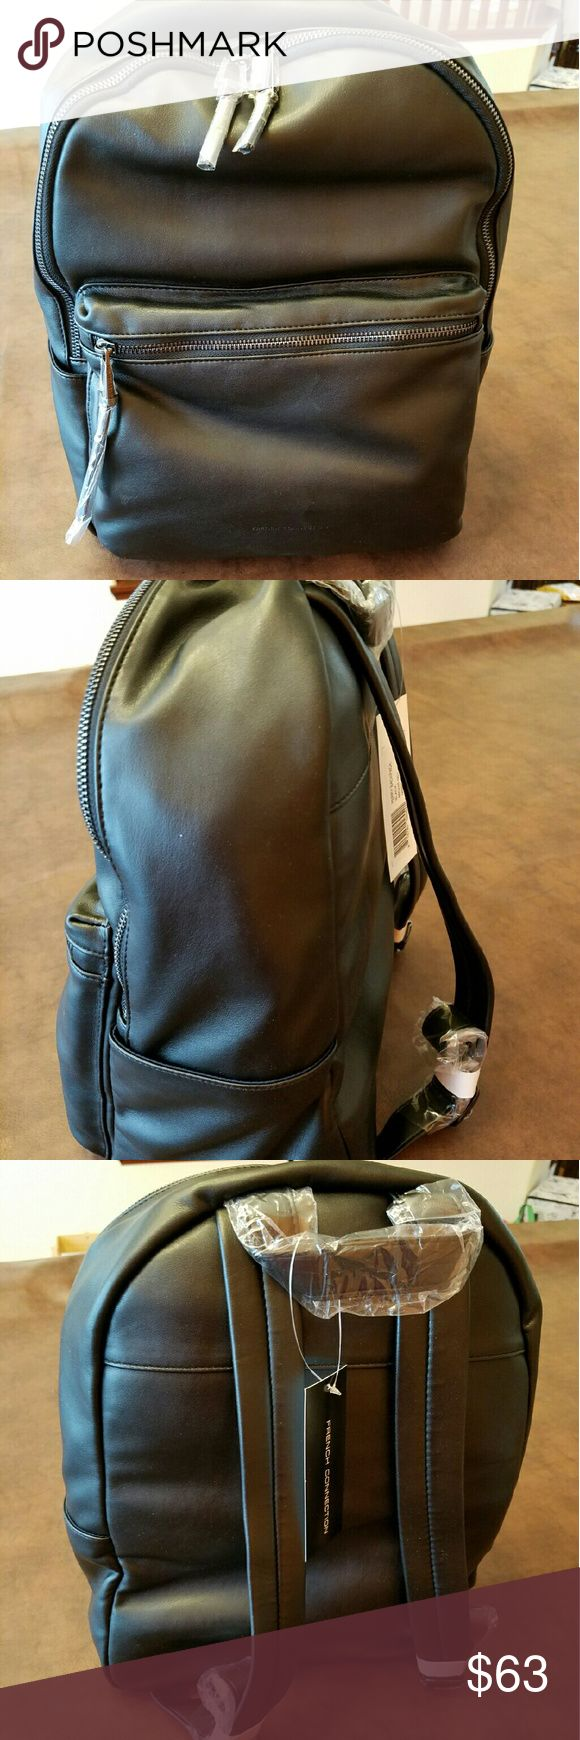 French connection Faux leather Back pack handbag Sleek Nwt French Connection Faux leather Backpack.  Medium sized.  Non-smoking home  Thanks for looking. French Connection Bags Backpacks